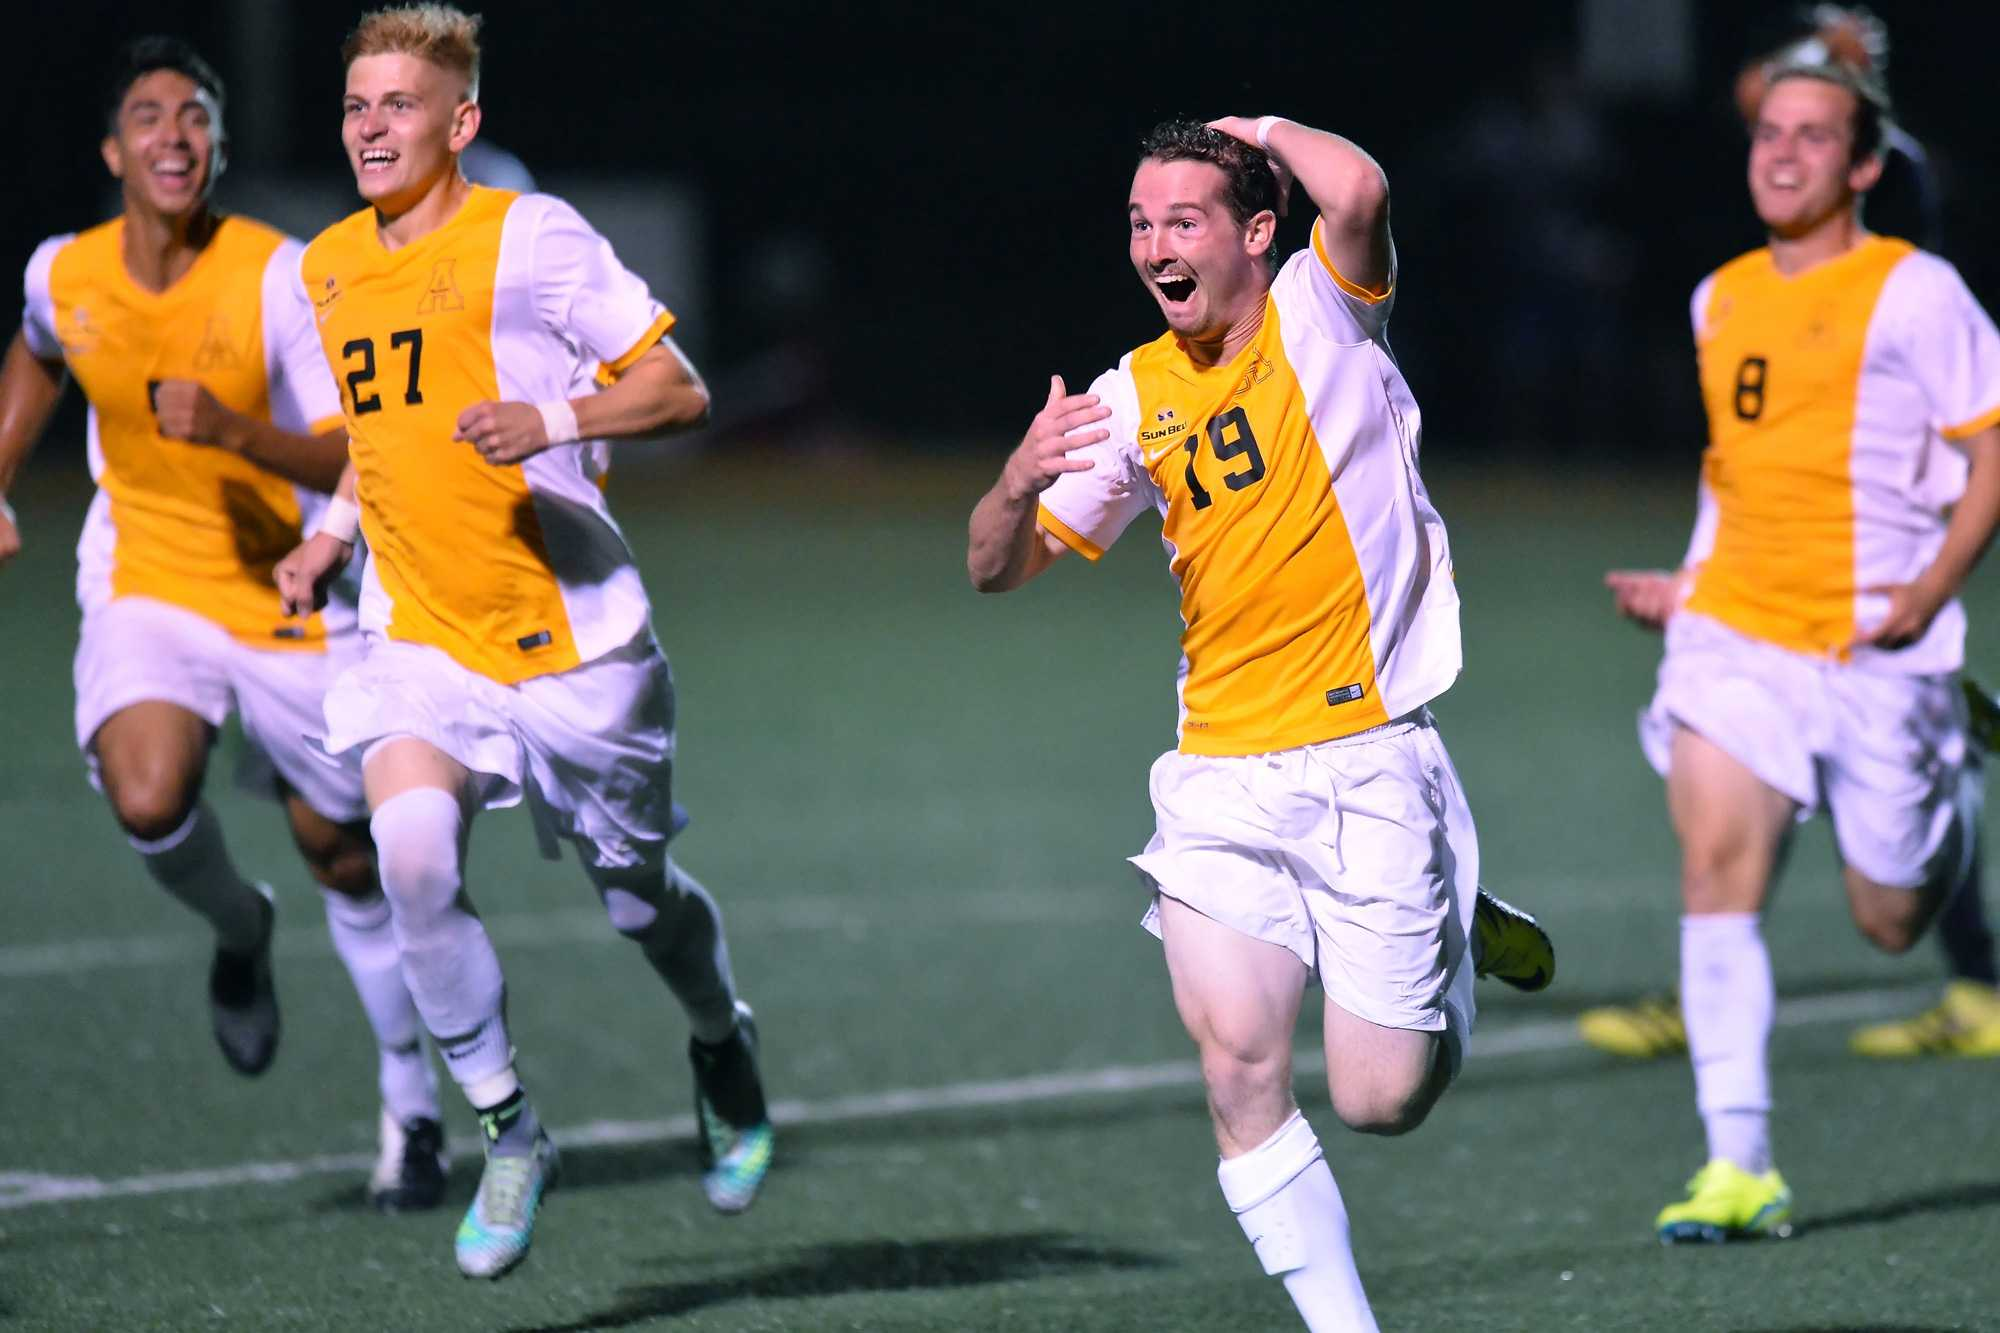 Midfield/forward Graham Smalley. Photo courtesy of Appalachian State Athletics/Tim Cowie.